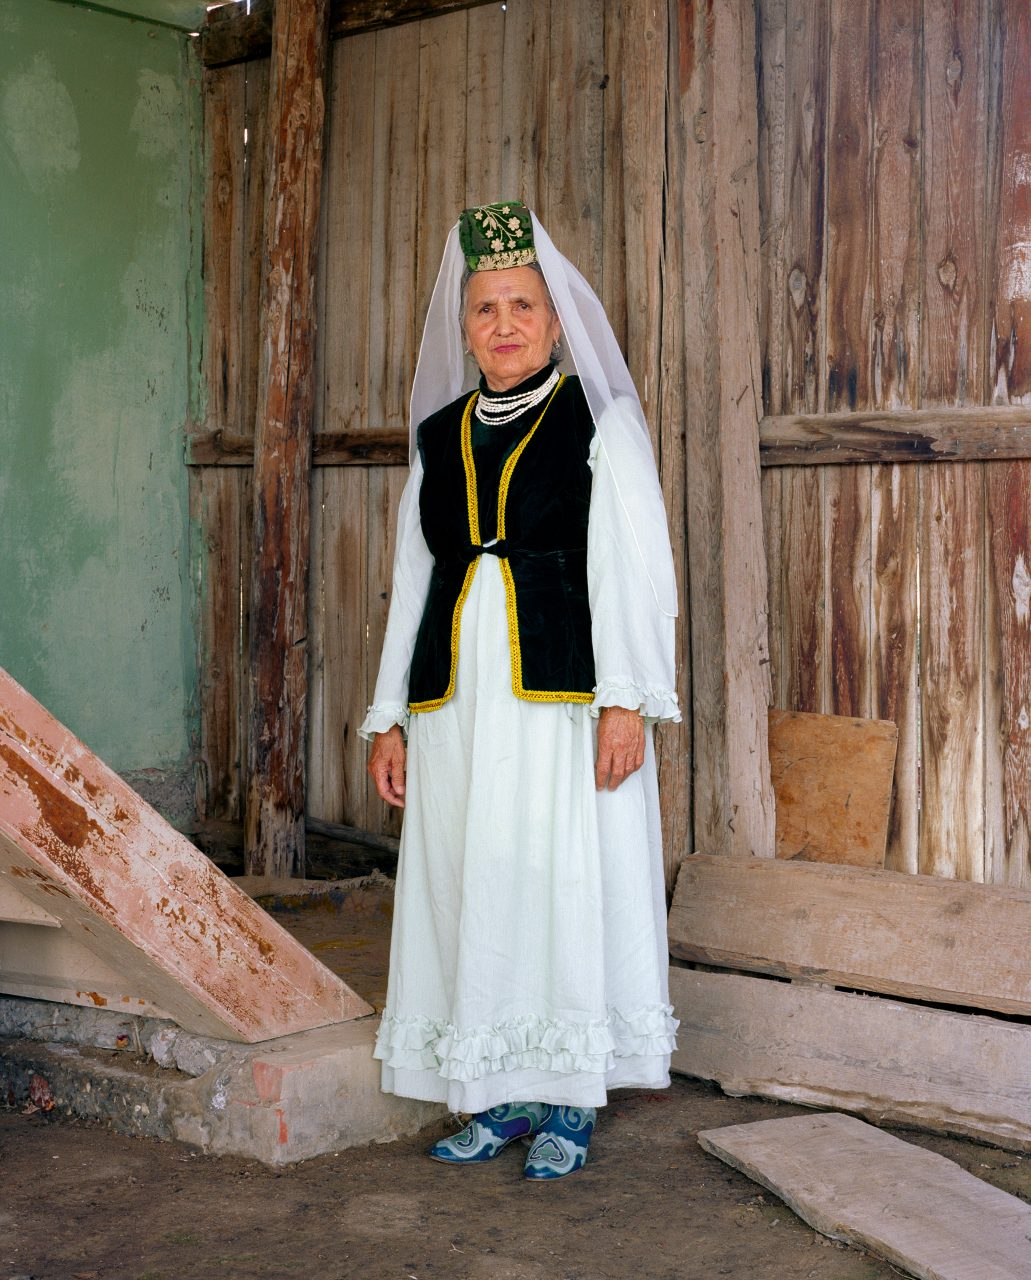 Russkie #38, c-print on dibond,100 x 80 cm, 2007